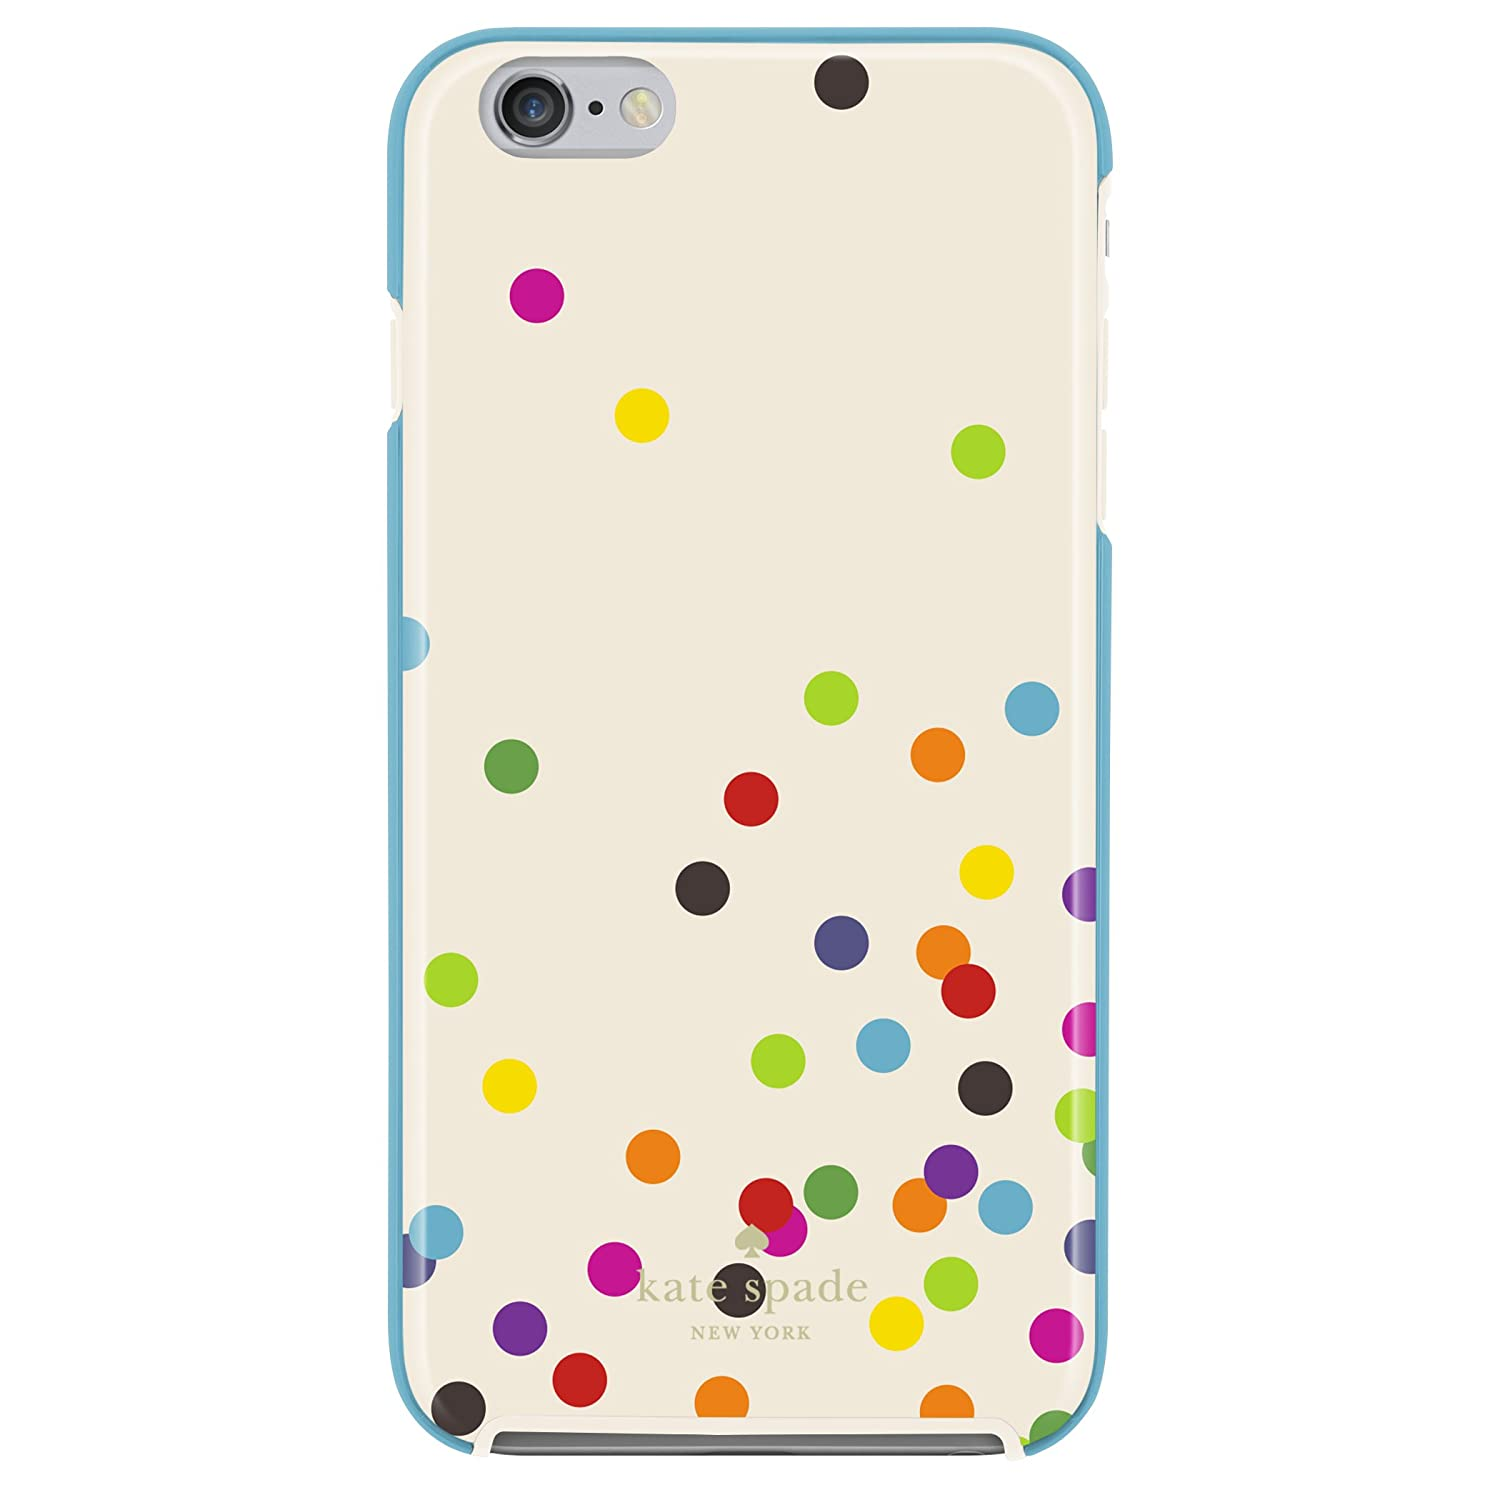 best service 2c2cb 83563 kate spade new york iPhone 6s Plus Case [Shock Absorbing] Cover fits both  iPhone 6 Plus, iPhone 6s Plus - Confetti Dot Multi